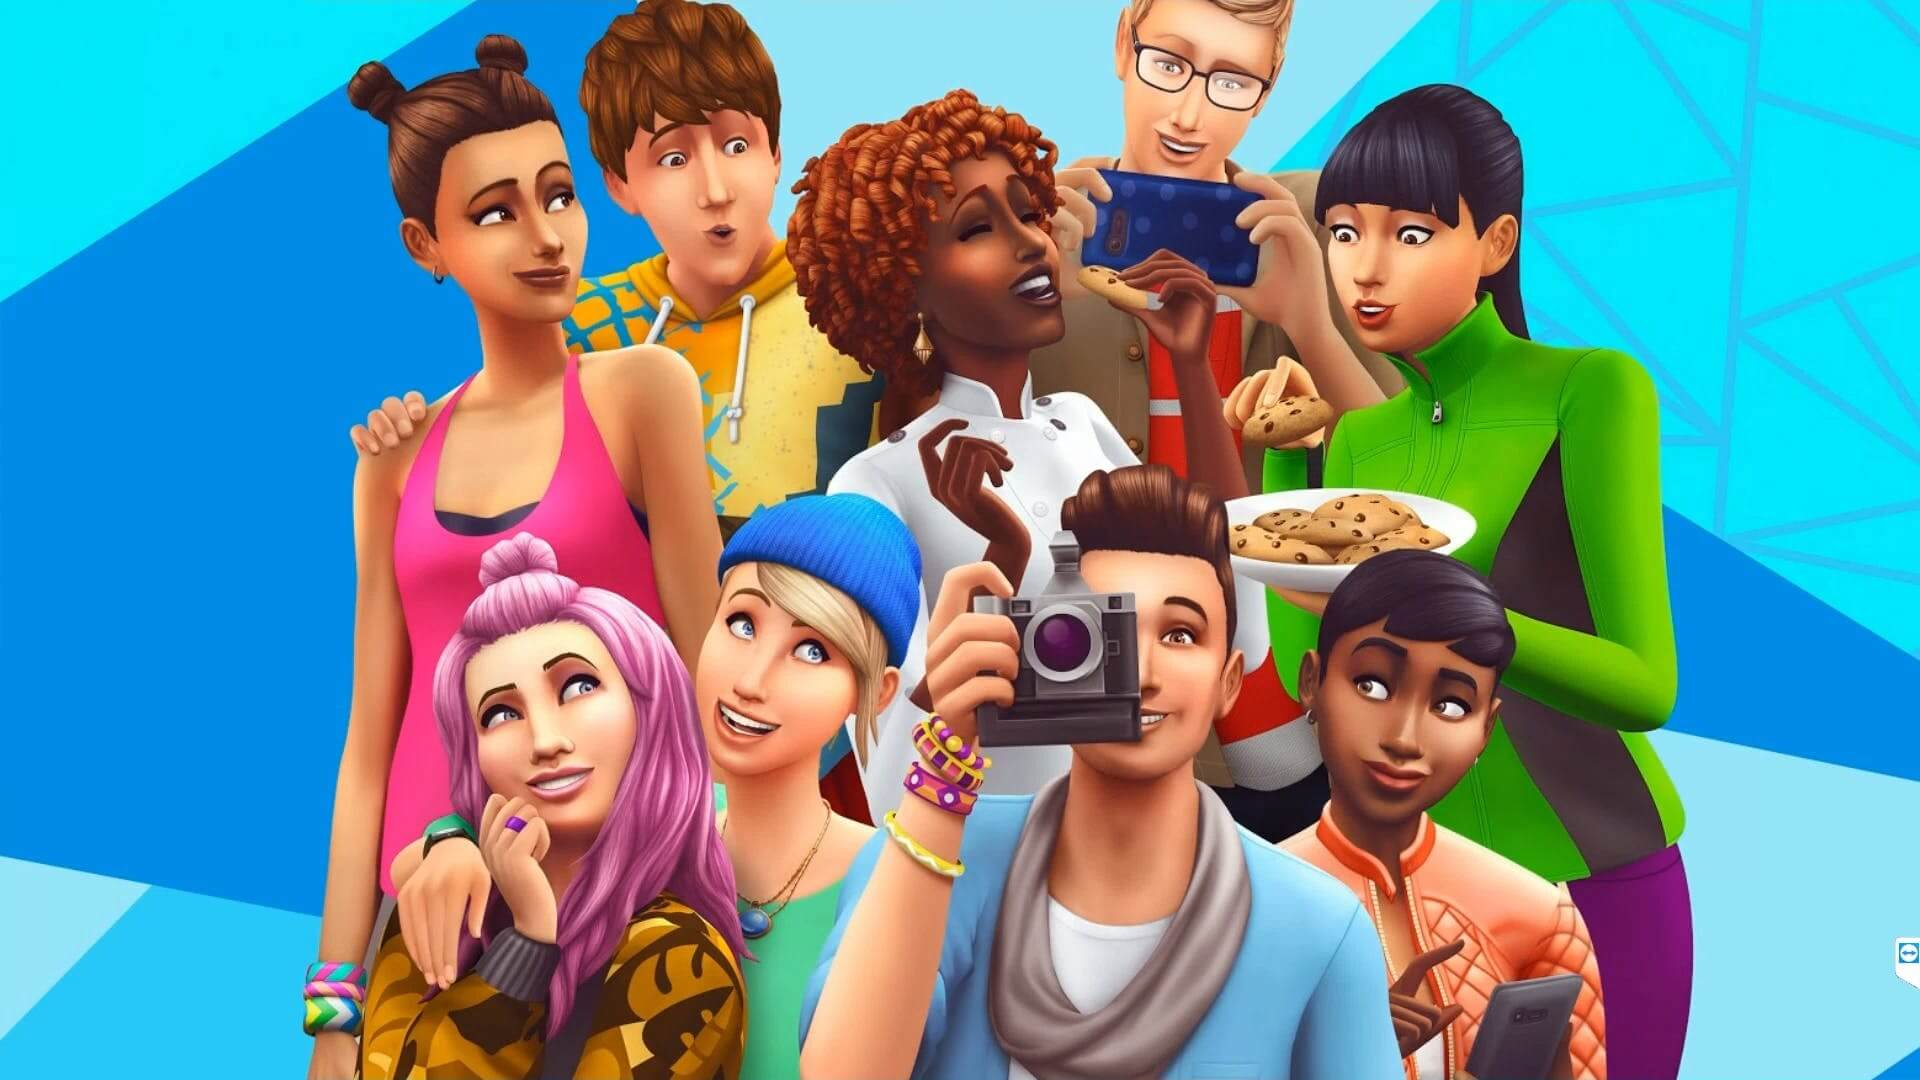 The Sims 4 is Getting a Paranormal Pack